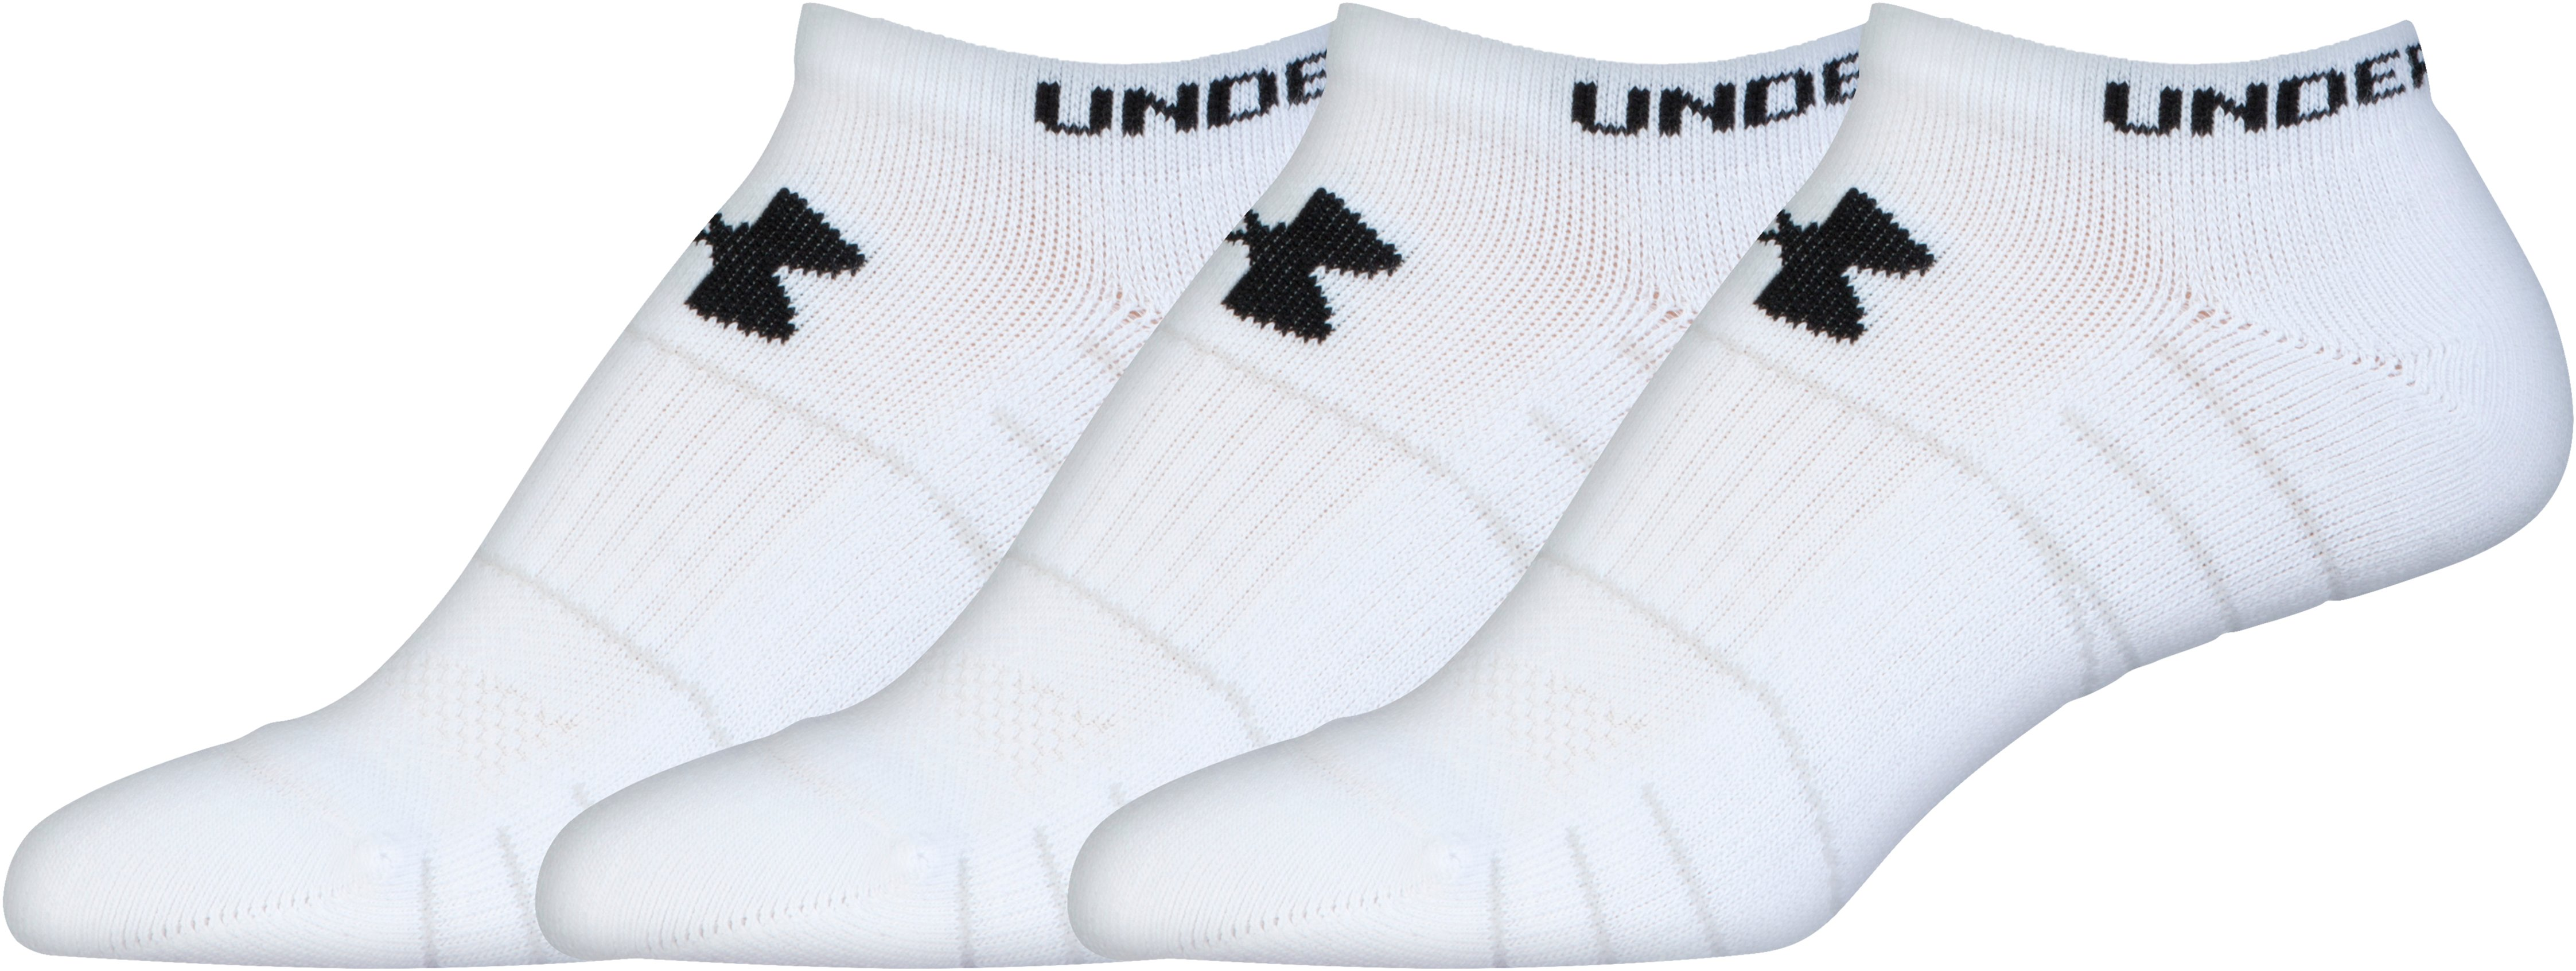 Women's UA Performance No Show Socks – 3-Pack, White